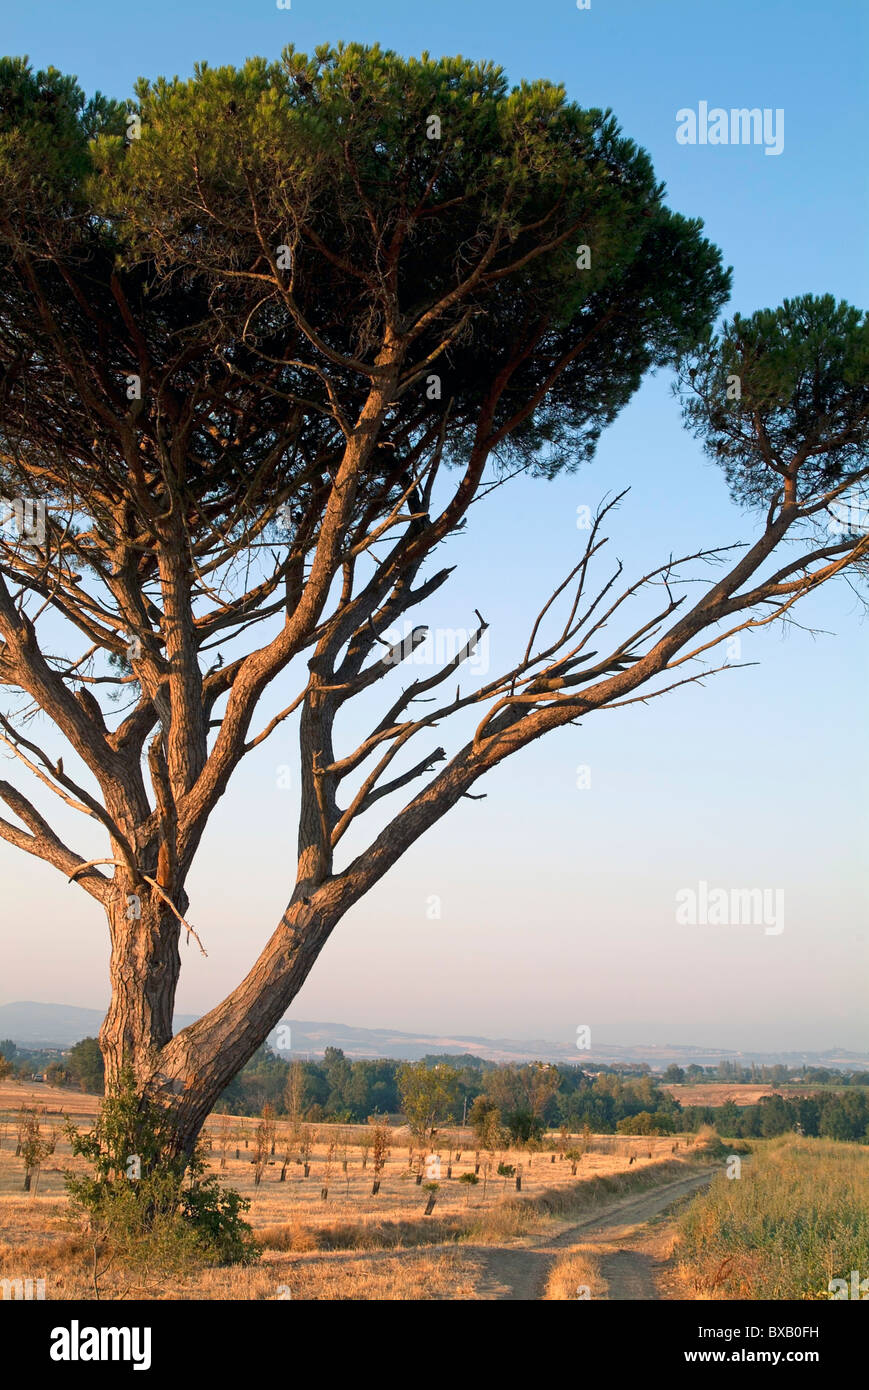 Dirt road passing an old pine tree, Carcassonne, Alzonne, France. - Stock Image